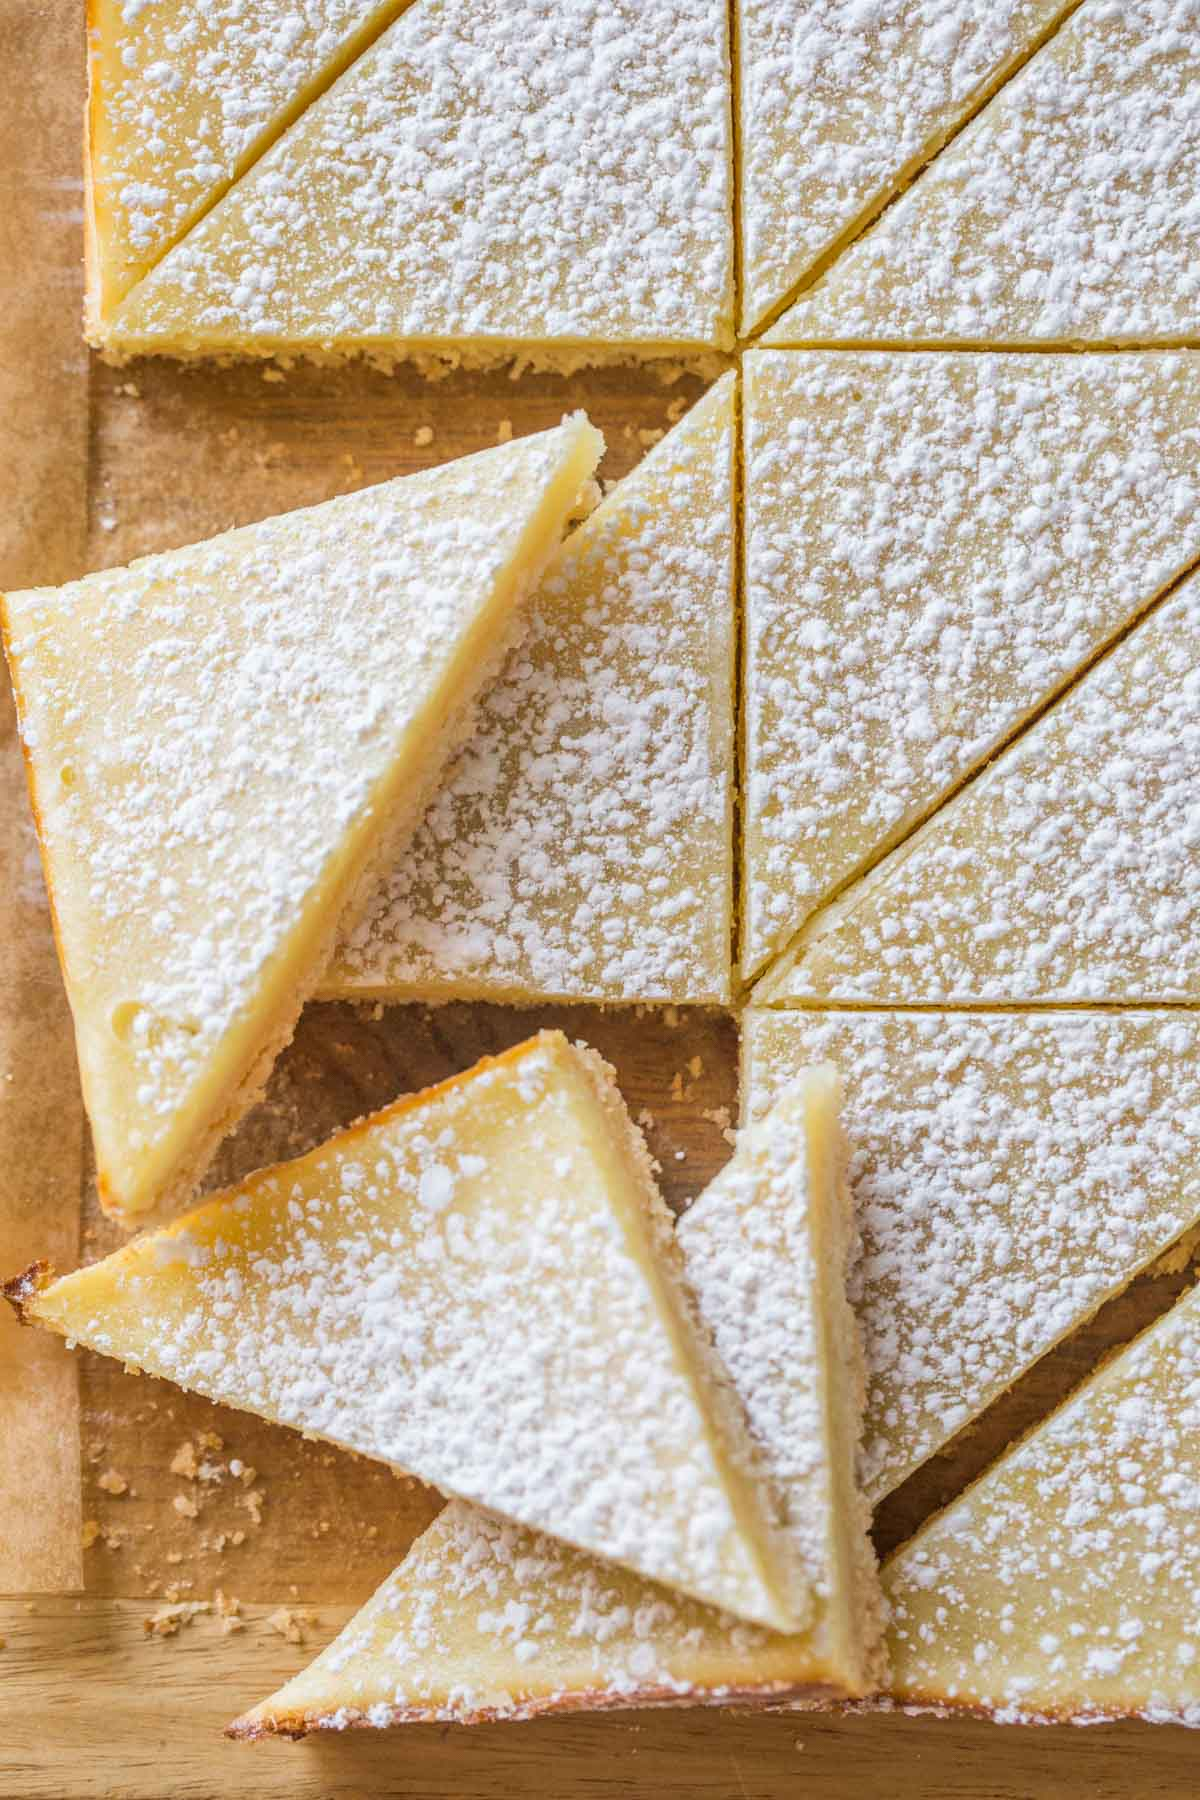 Overhead view of Swedish Lemon Bars on a wooden cutting board.